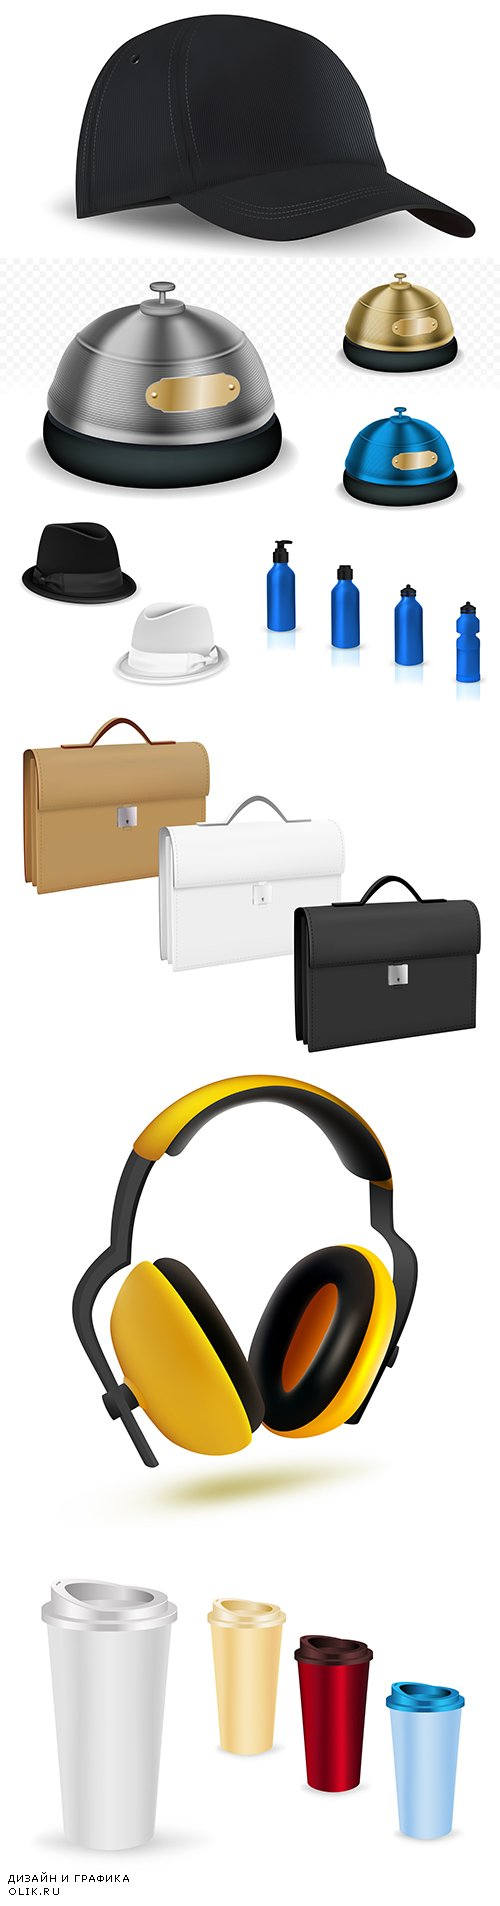 Business briefcase, baseball cap and sports bottle